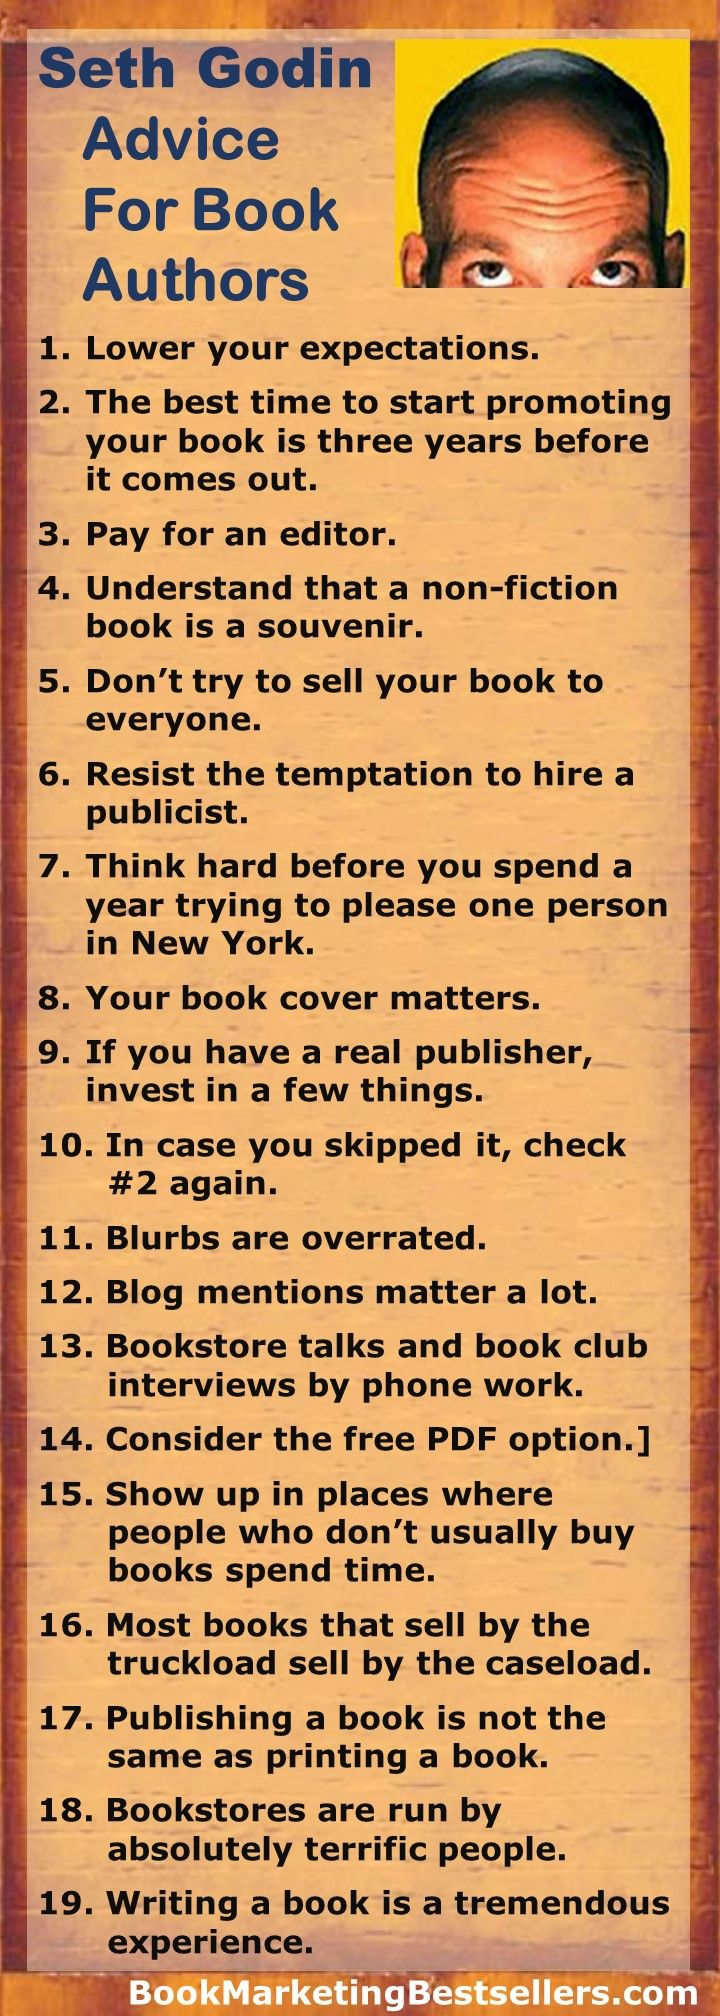 Seth Godin: 19 Points of Advice for Book Authors | book marketing tips | writing advice